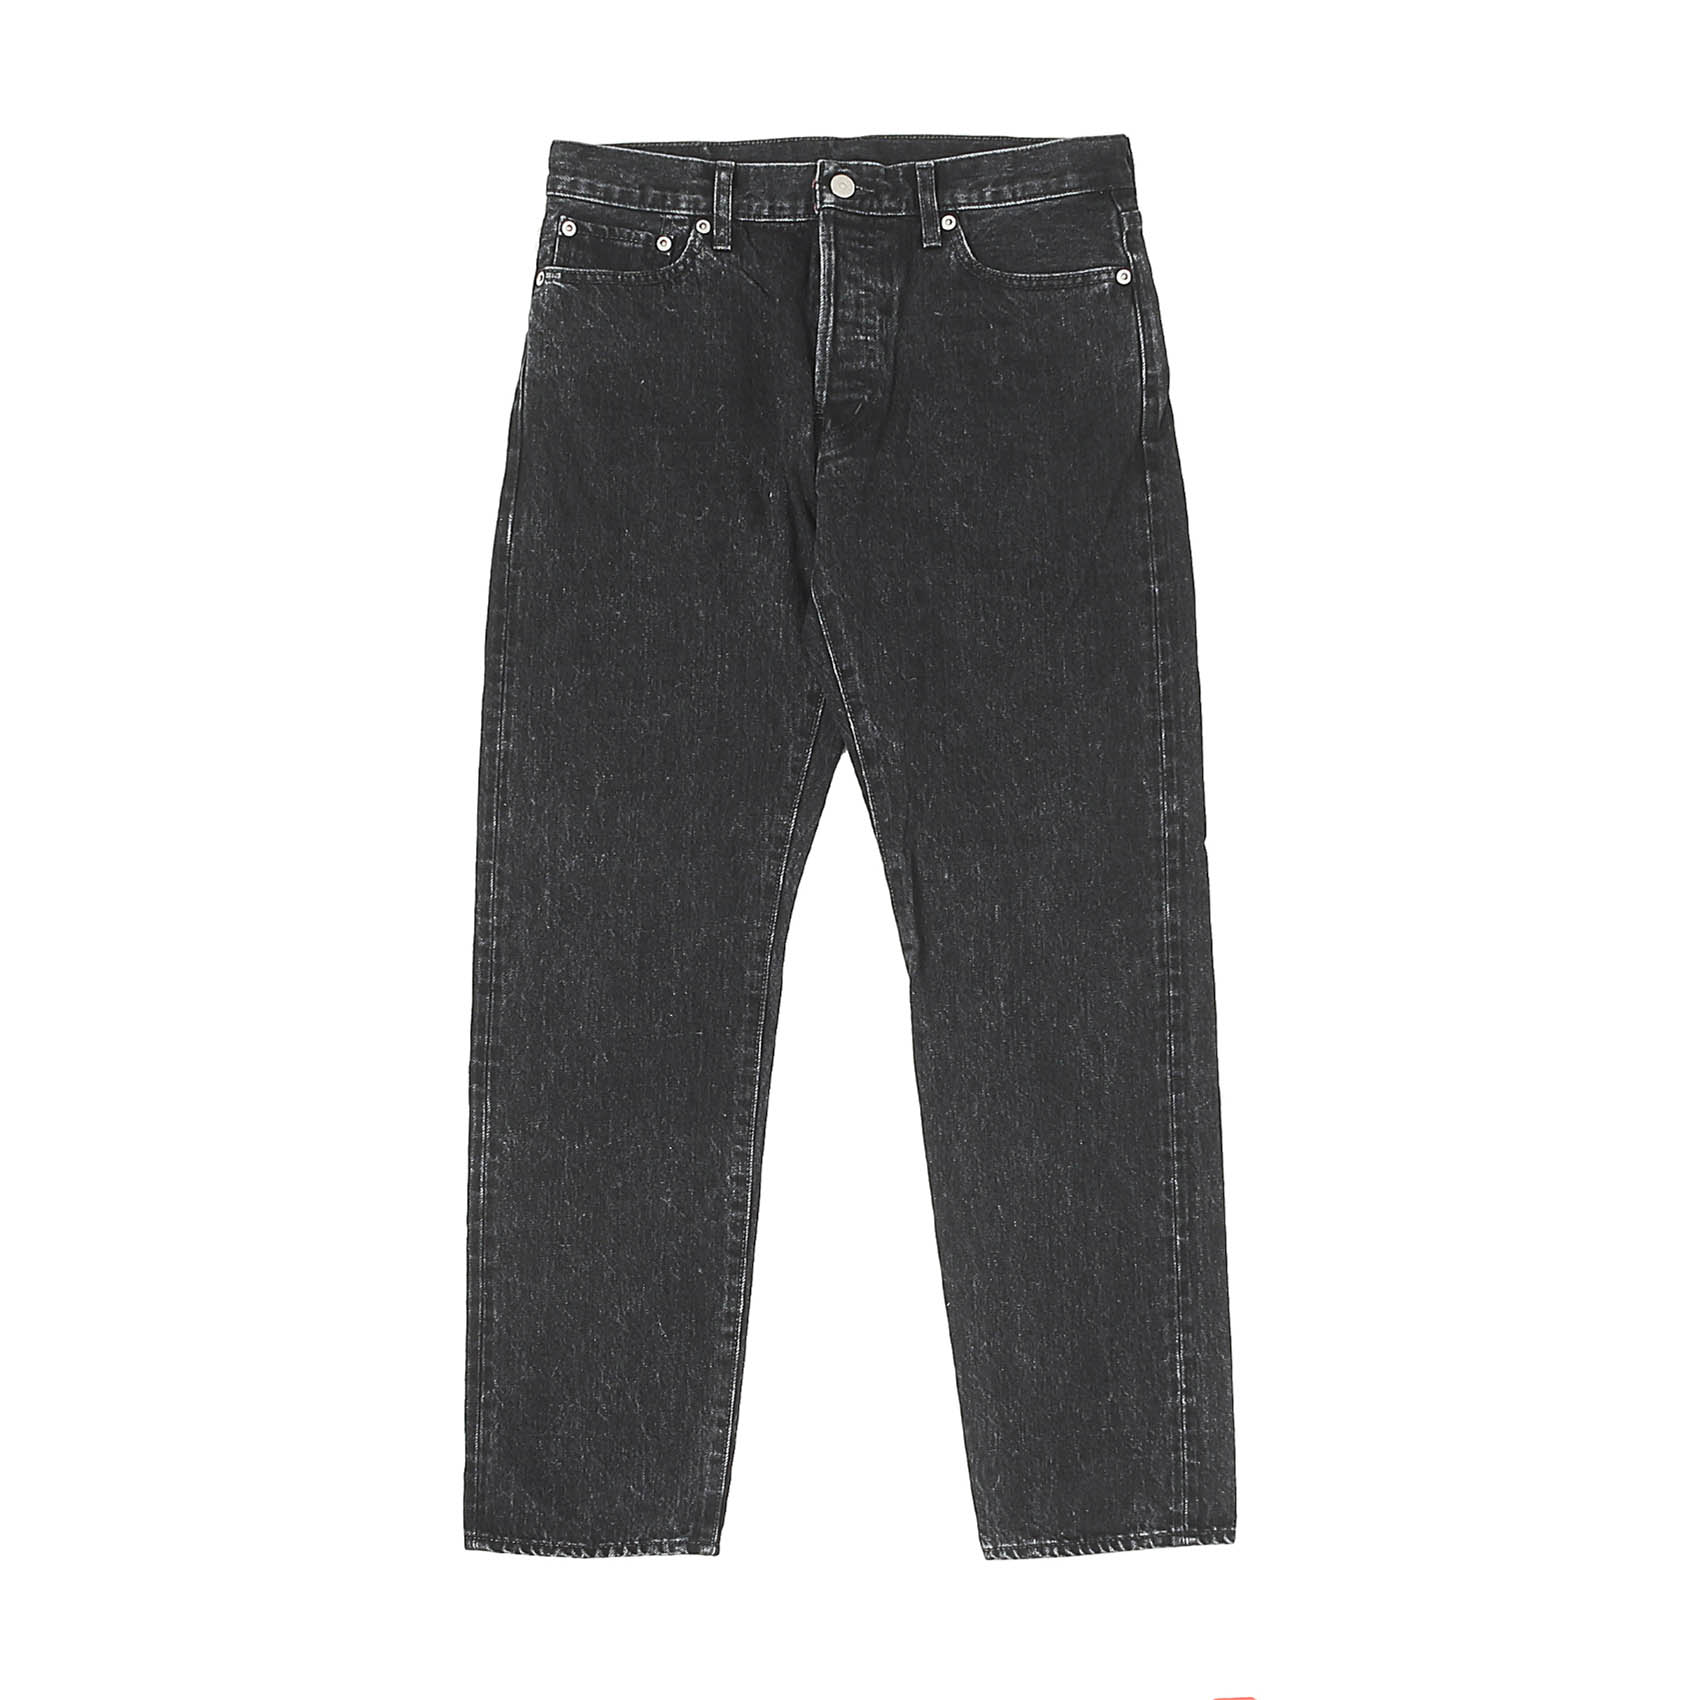 5 POCKET ROLL UP DENIM PANTS - BLACK USED